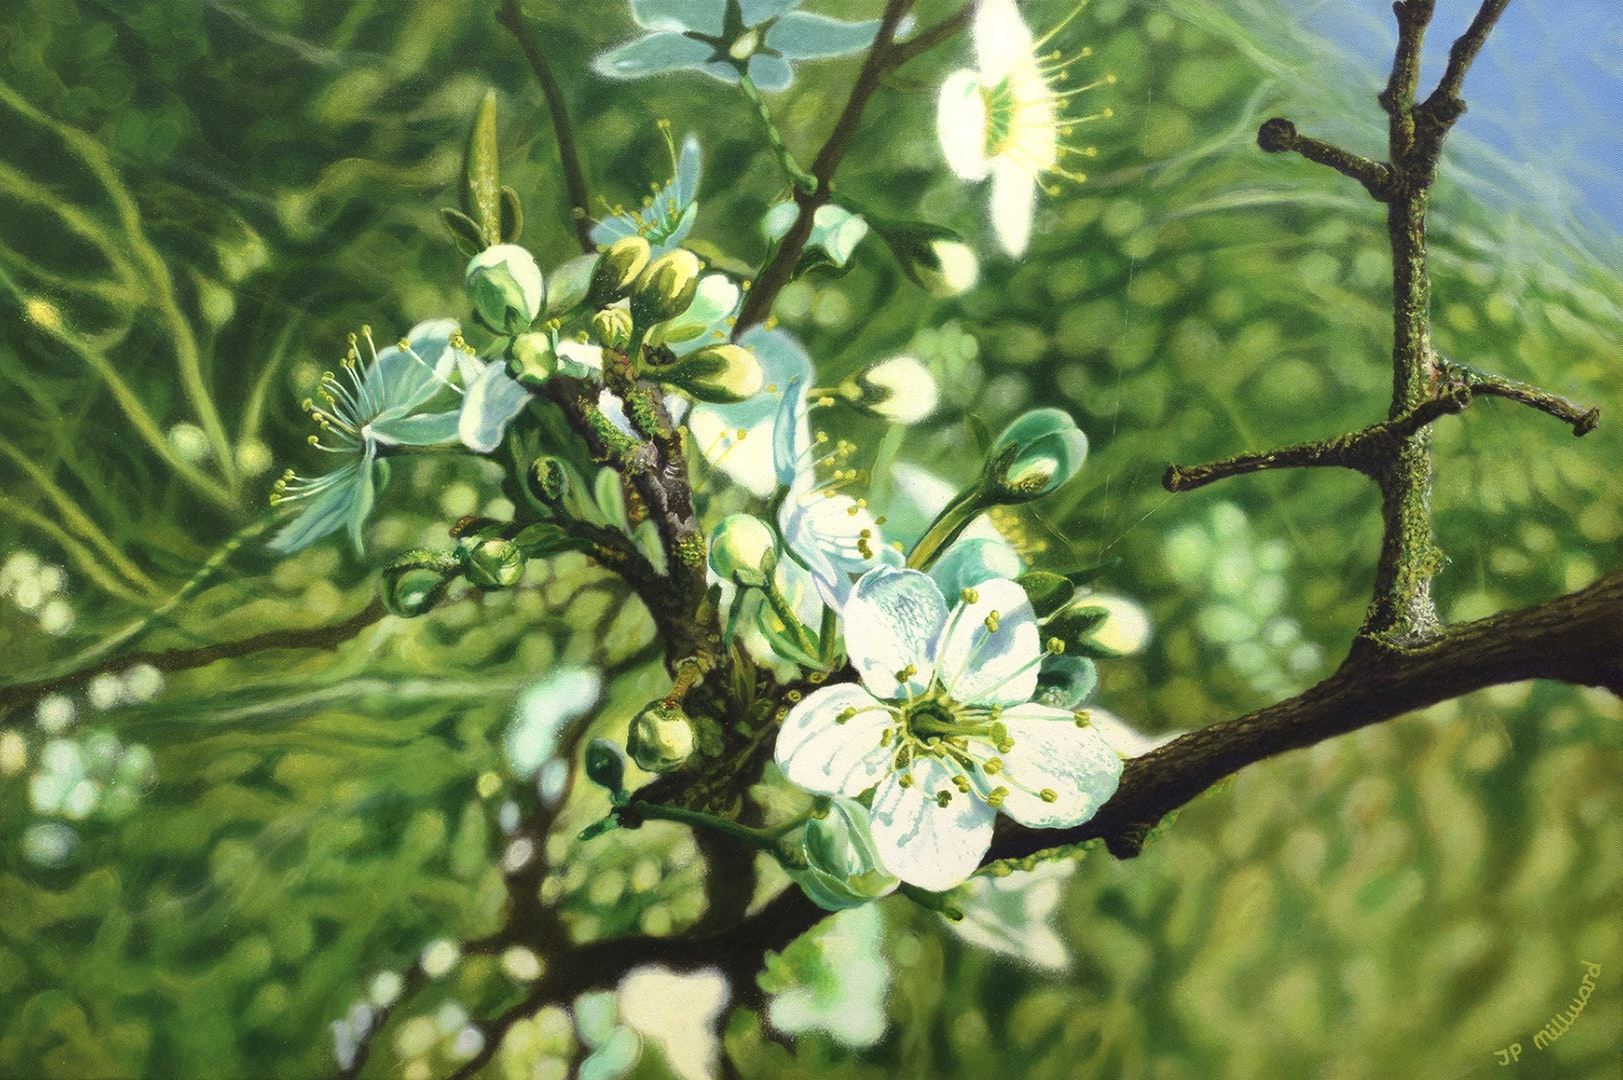 'Buds will burst', James Peter Millward, Golden open acrylics on stretched canvas, 90 x 60 cm